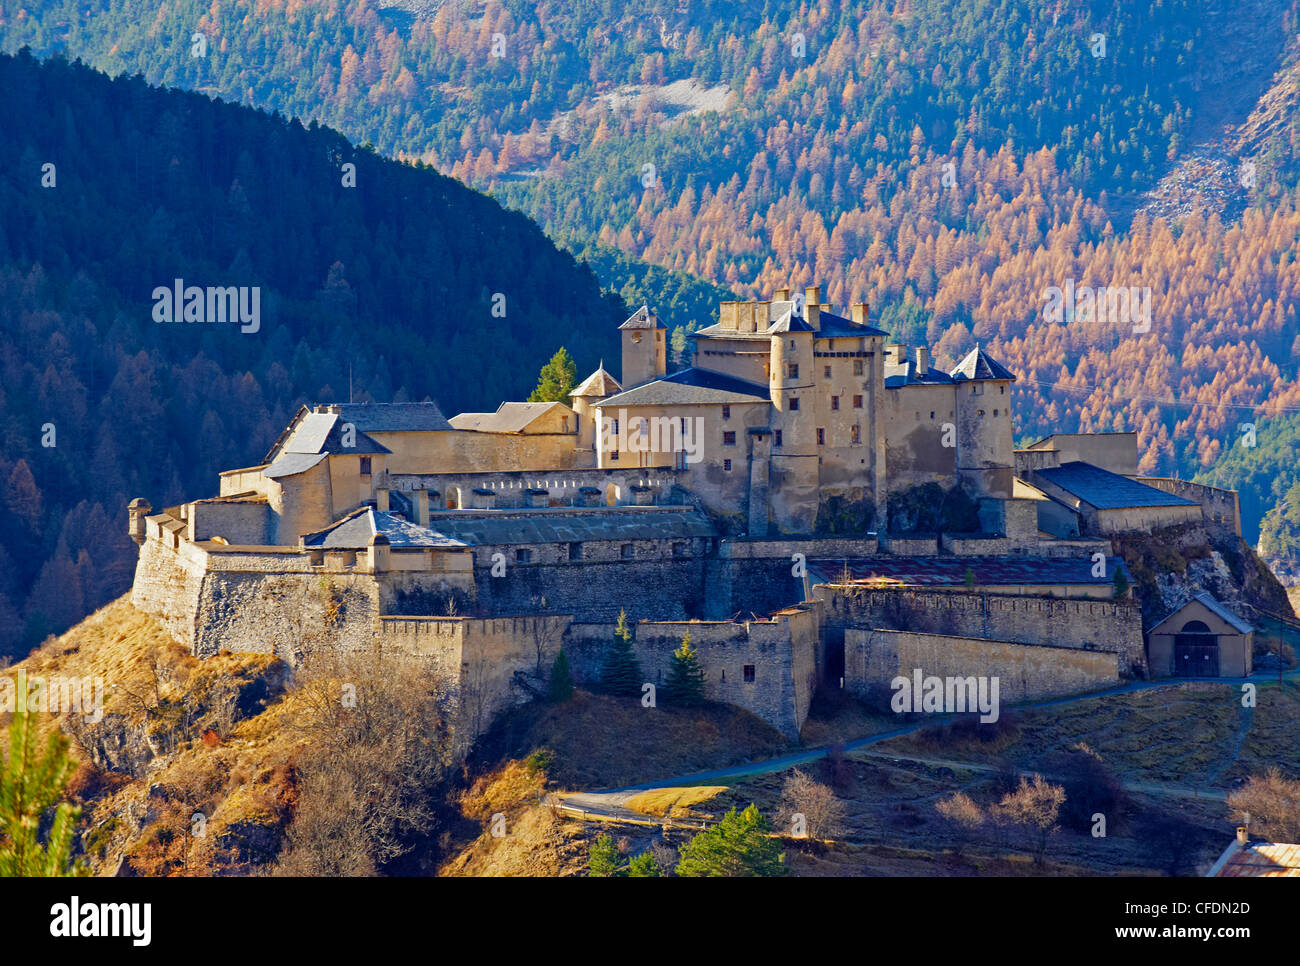 Village of Chateau-Queyras, Parc Naturel Regional du Queyras (Regional Park of Queyras), Hautes-Alpes, France, Europe - Stock Image